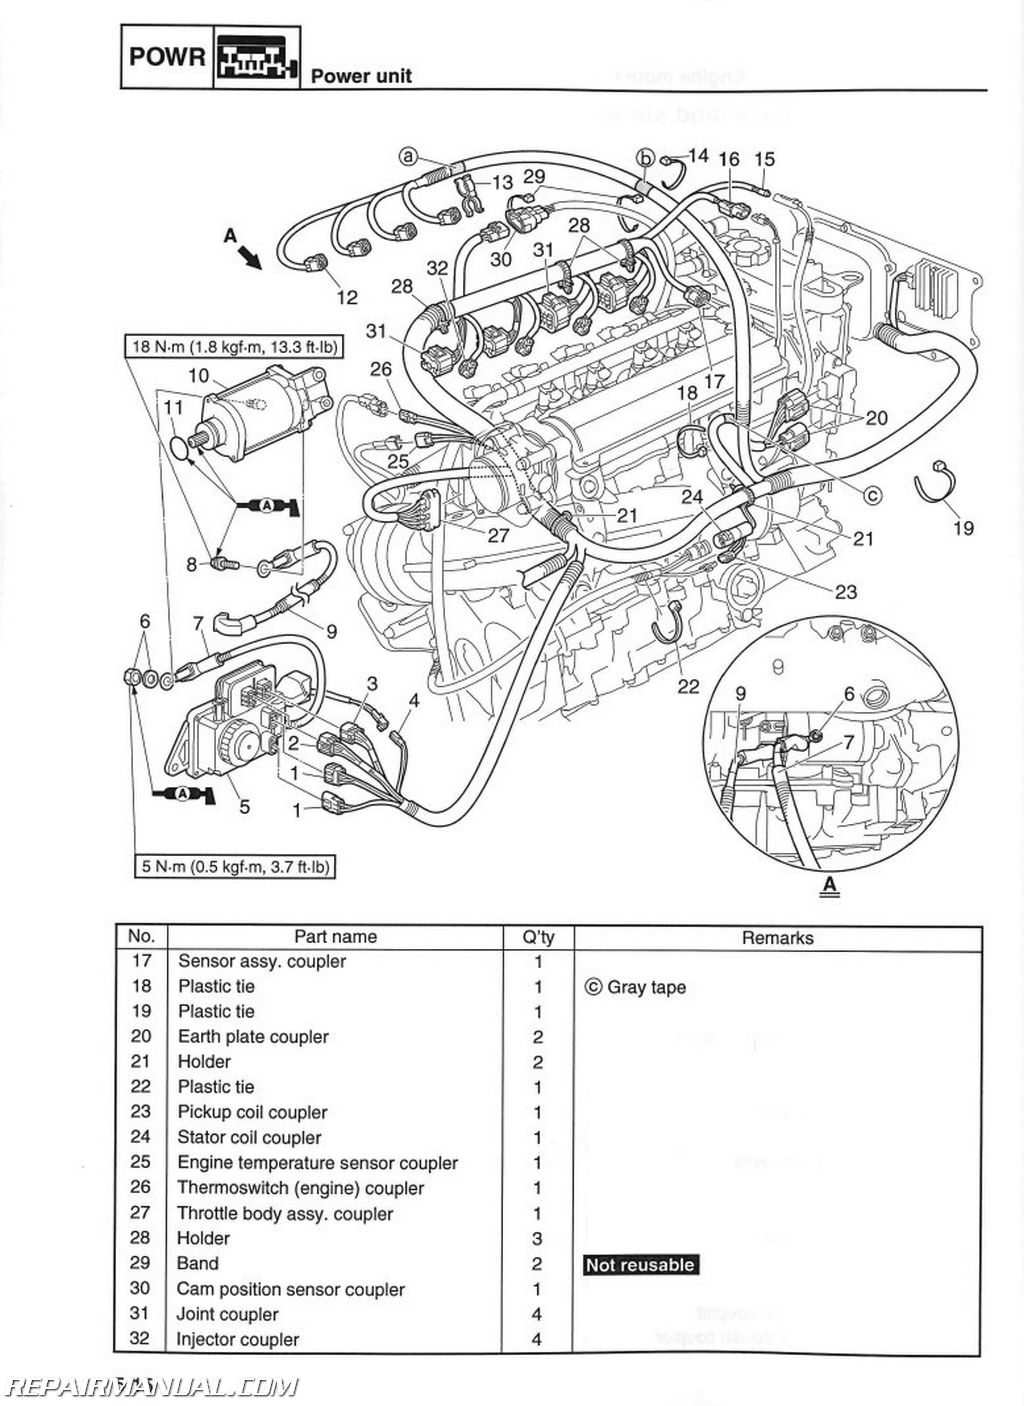 Wiring Diagram Cruiser R 26vsb